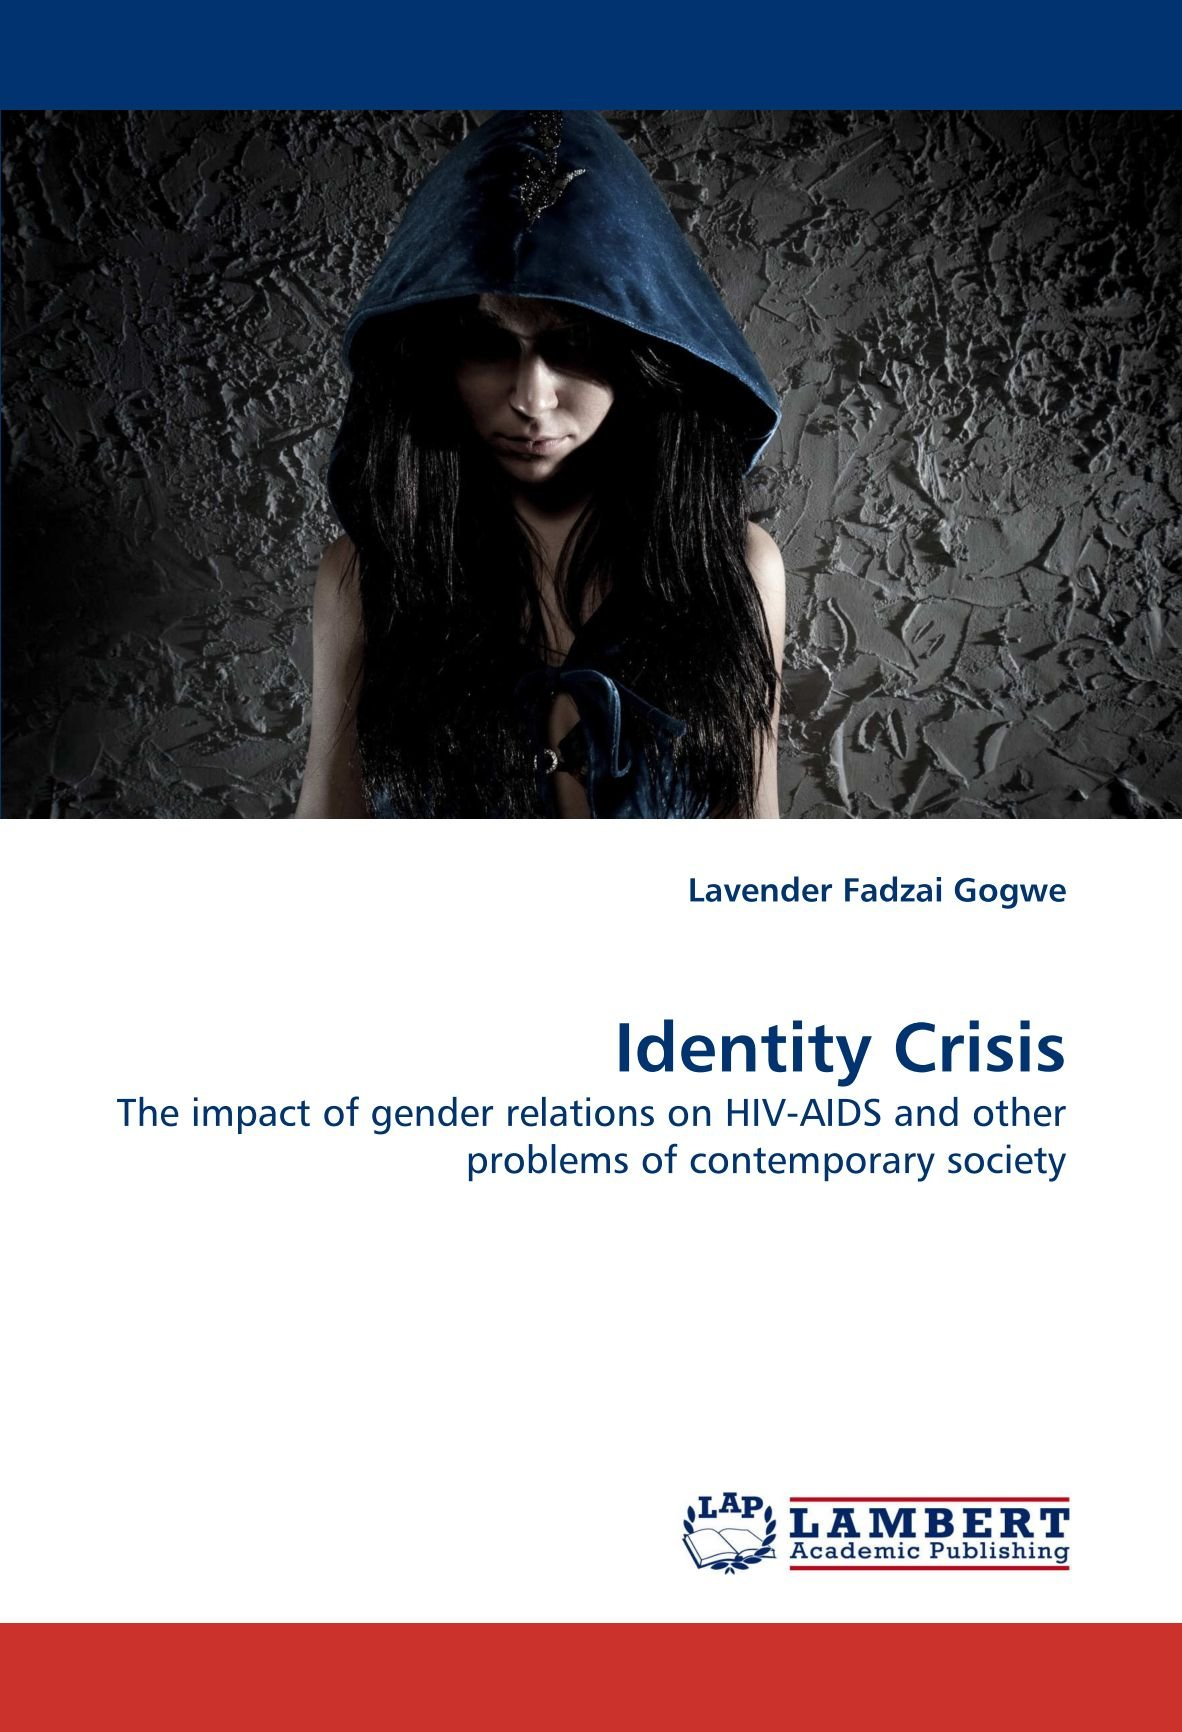 Download Identity Crisis: The impact of gender relations on HIV-AIDS and other problems of contemporary society pdf